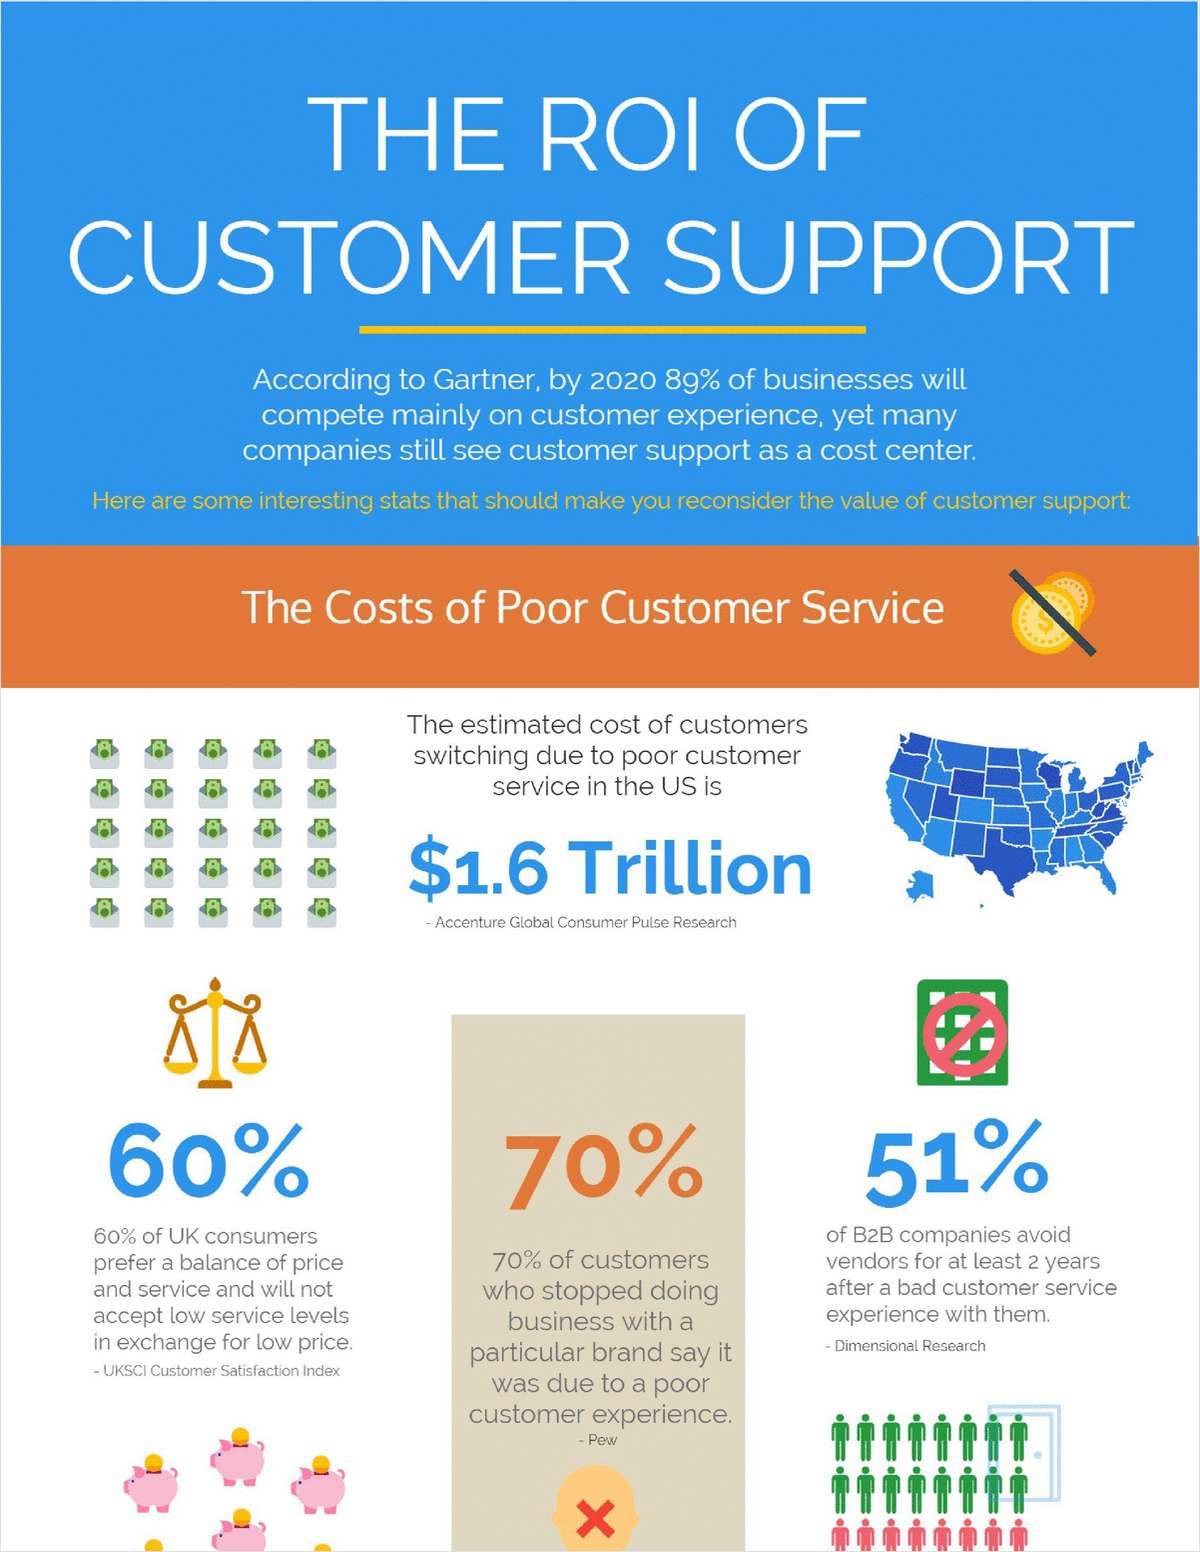 The ROI of Customer Support